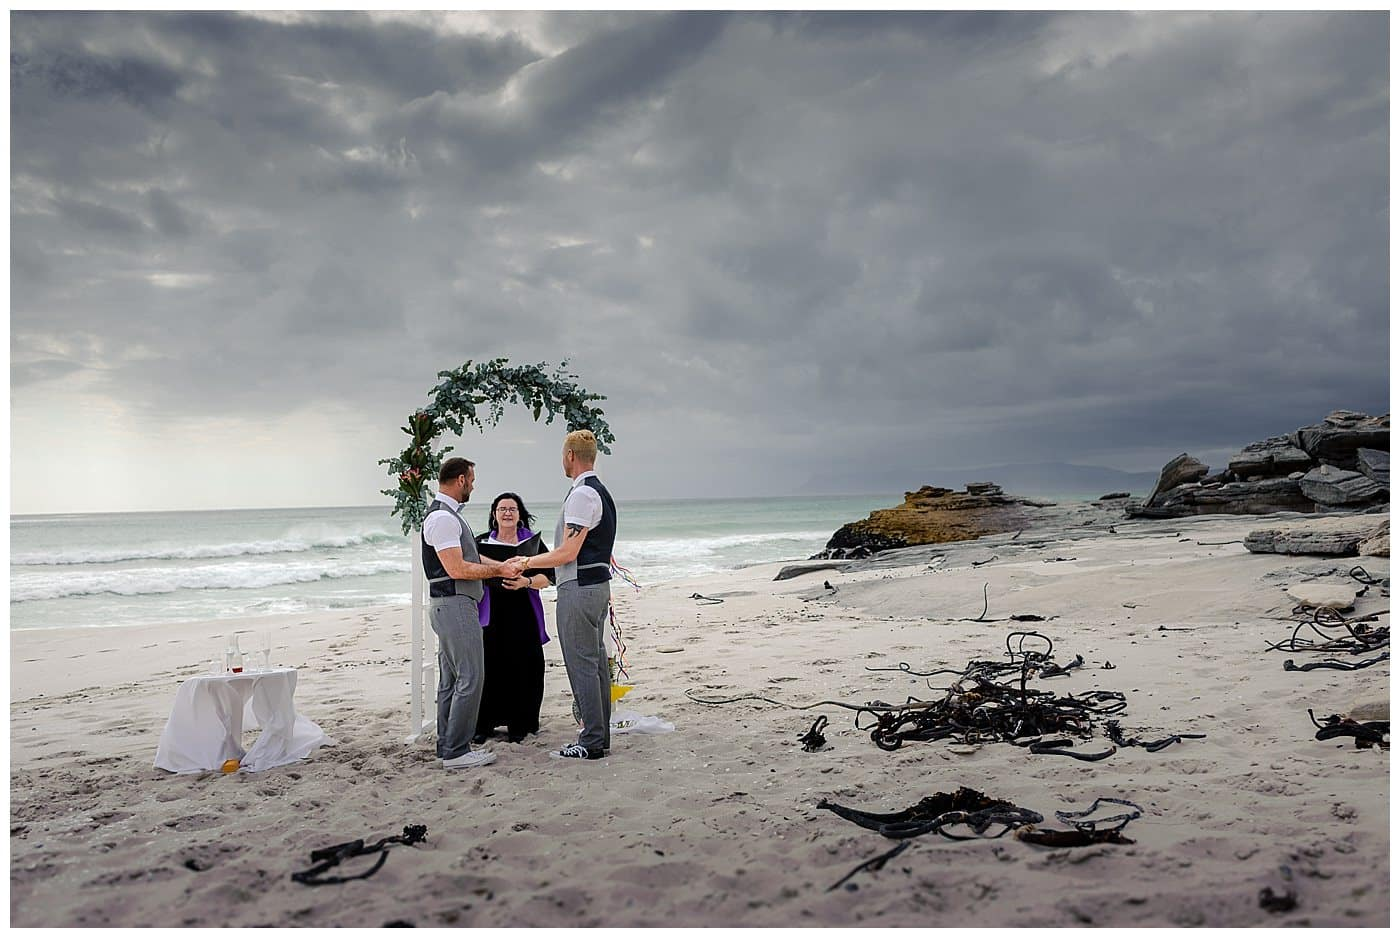 Grootbos Private nature reserve wedding photography